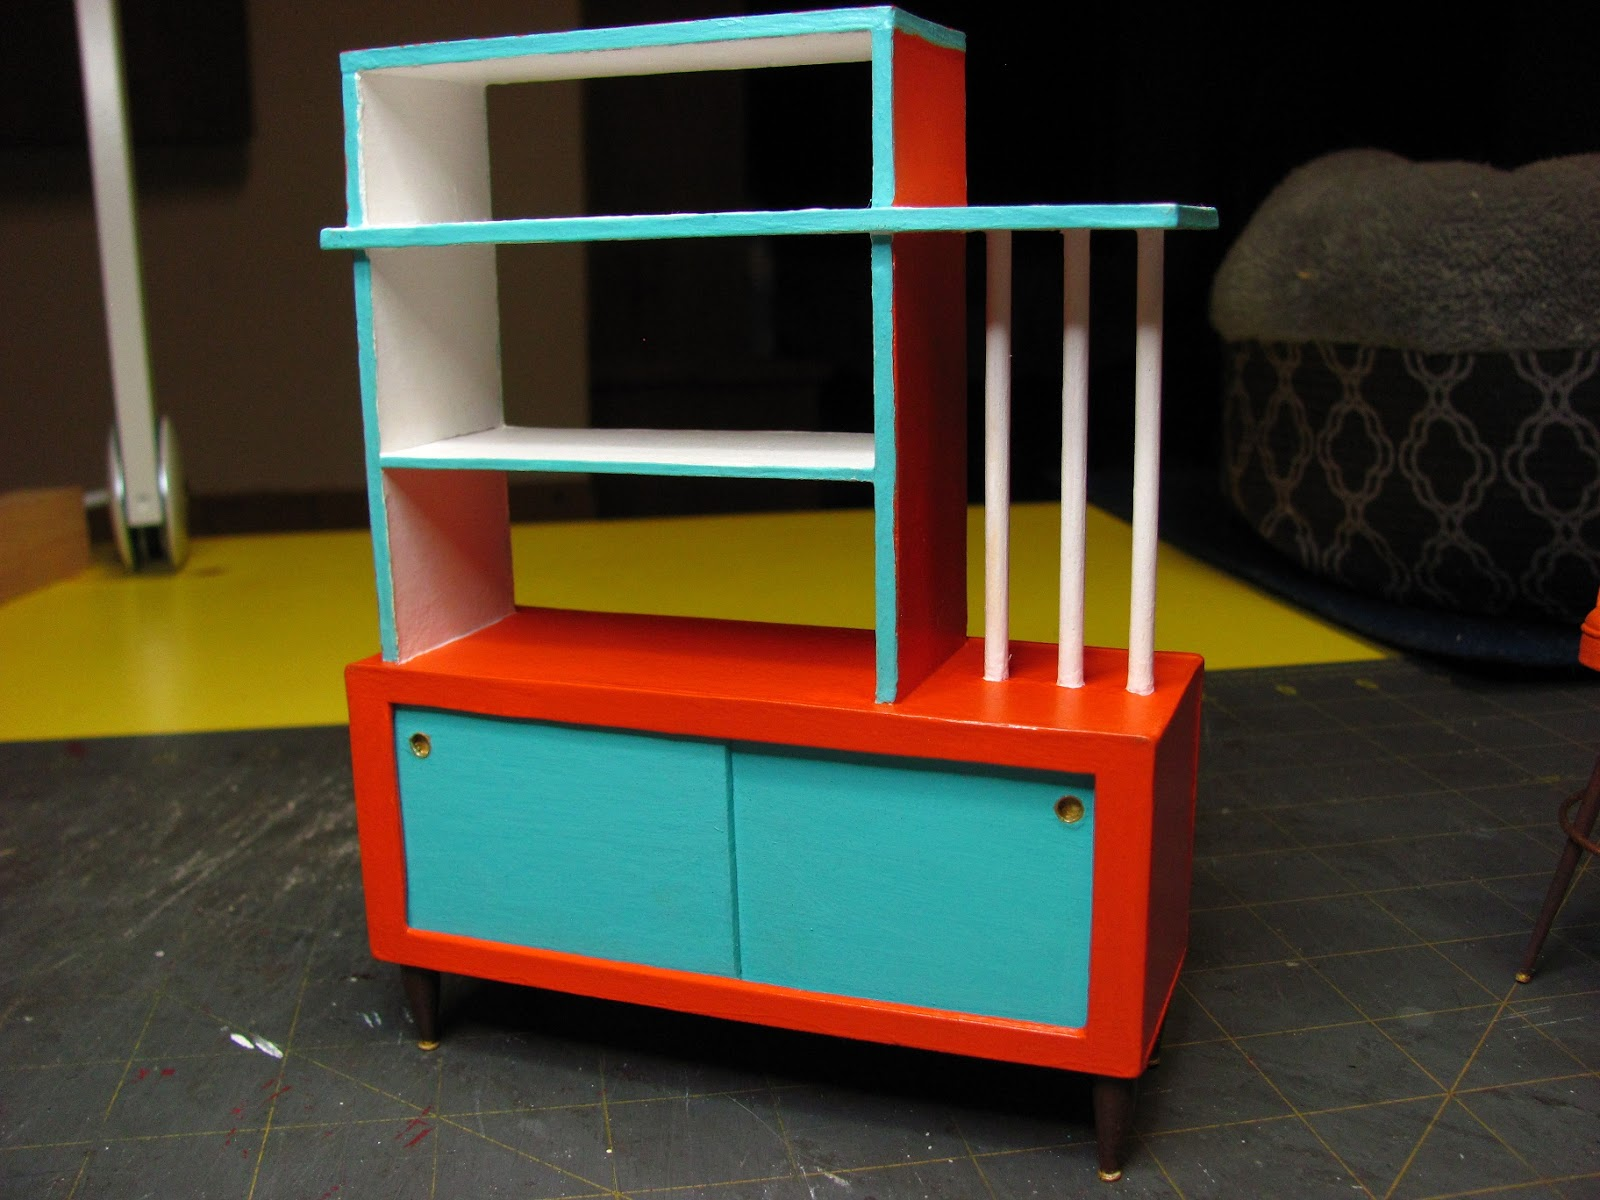 MID CENTURY 1 INCH SCALE ROOM DIVIDER/BOOKSHELF TUTORIAL   How To Make A 1  Inch Scale Mid Century Room Divider For Your Dollhouse.